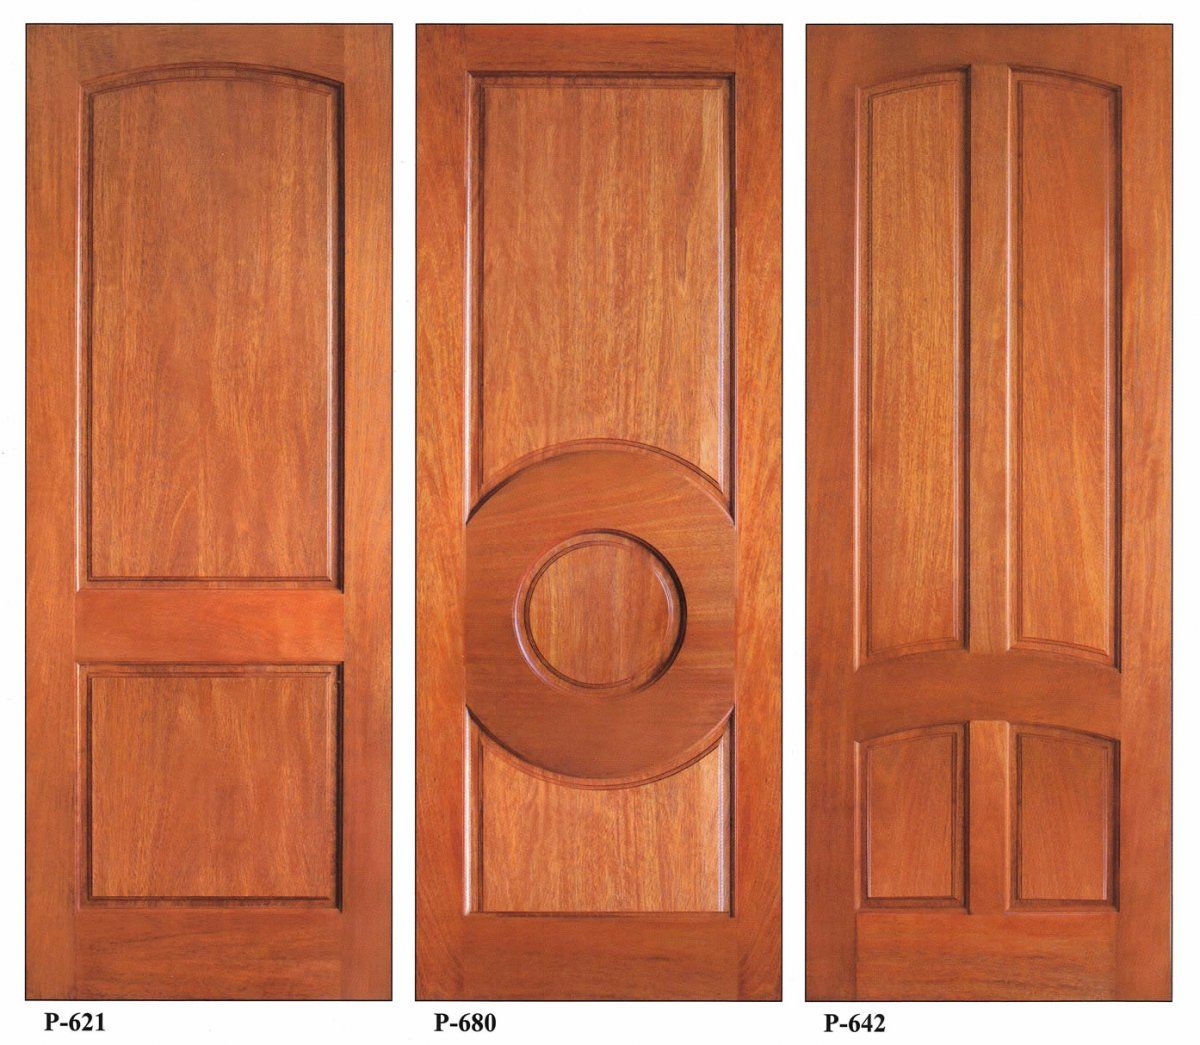 Wood door oak exacting artistry from modern front doors to for Wood stile and rail doors